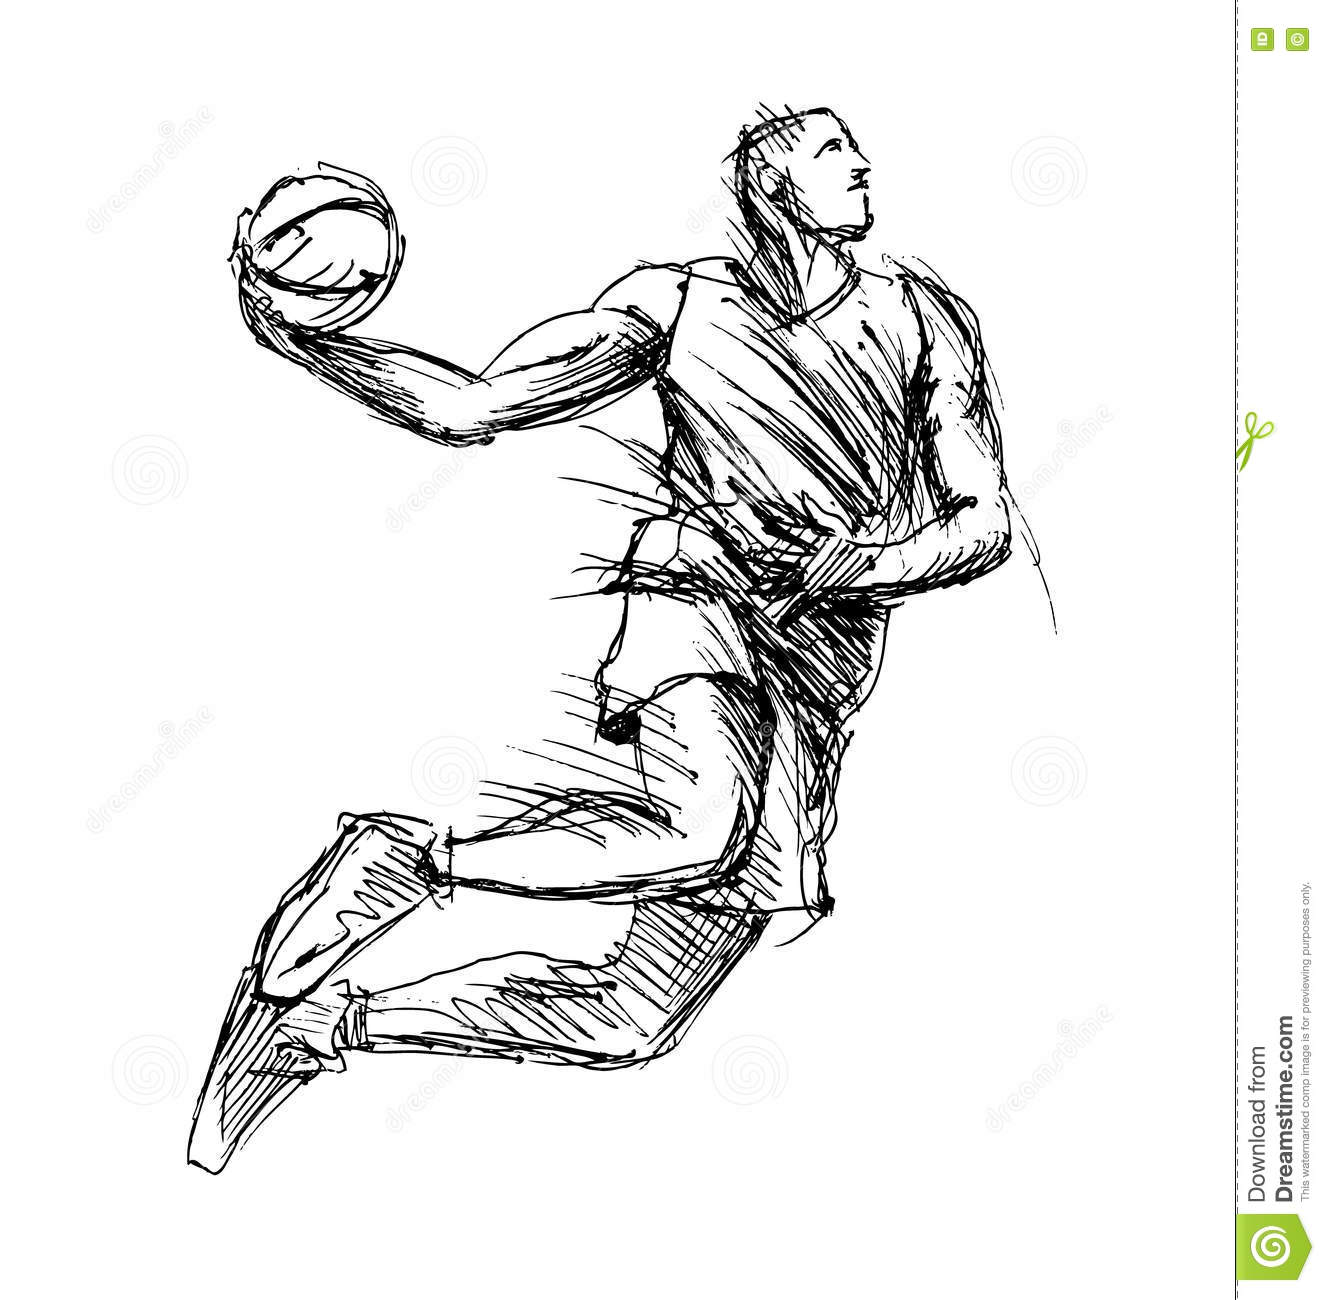 Drawing Lines James Rachels Summary : Hand sketch basketball player stock vector illustration